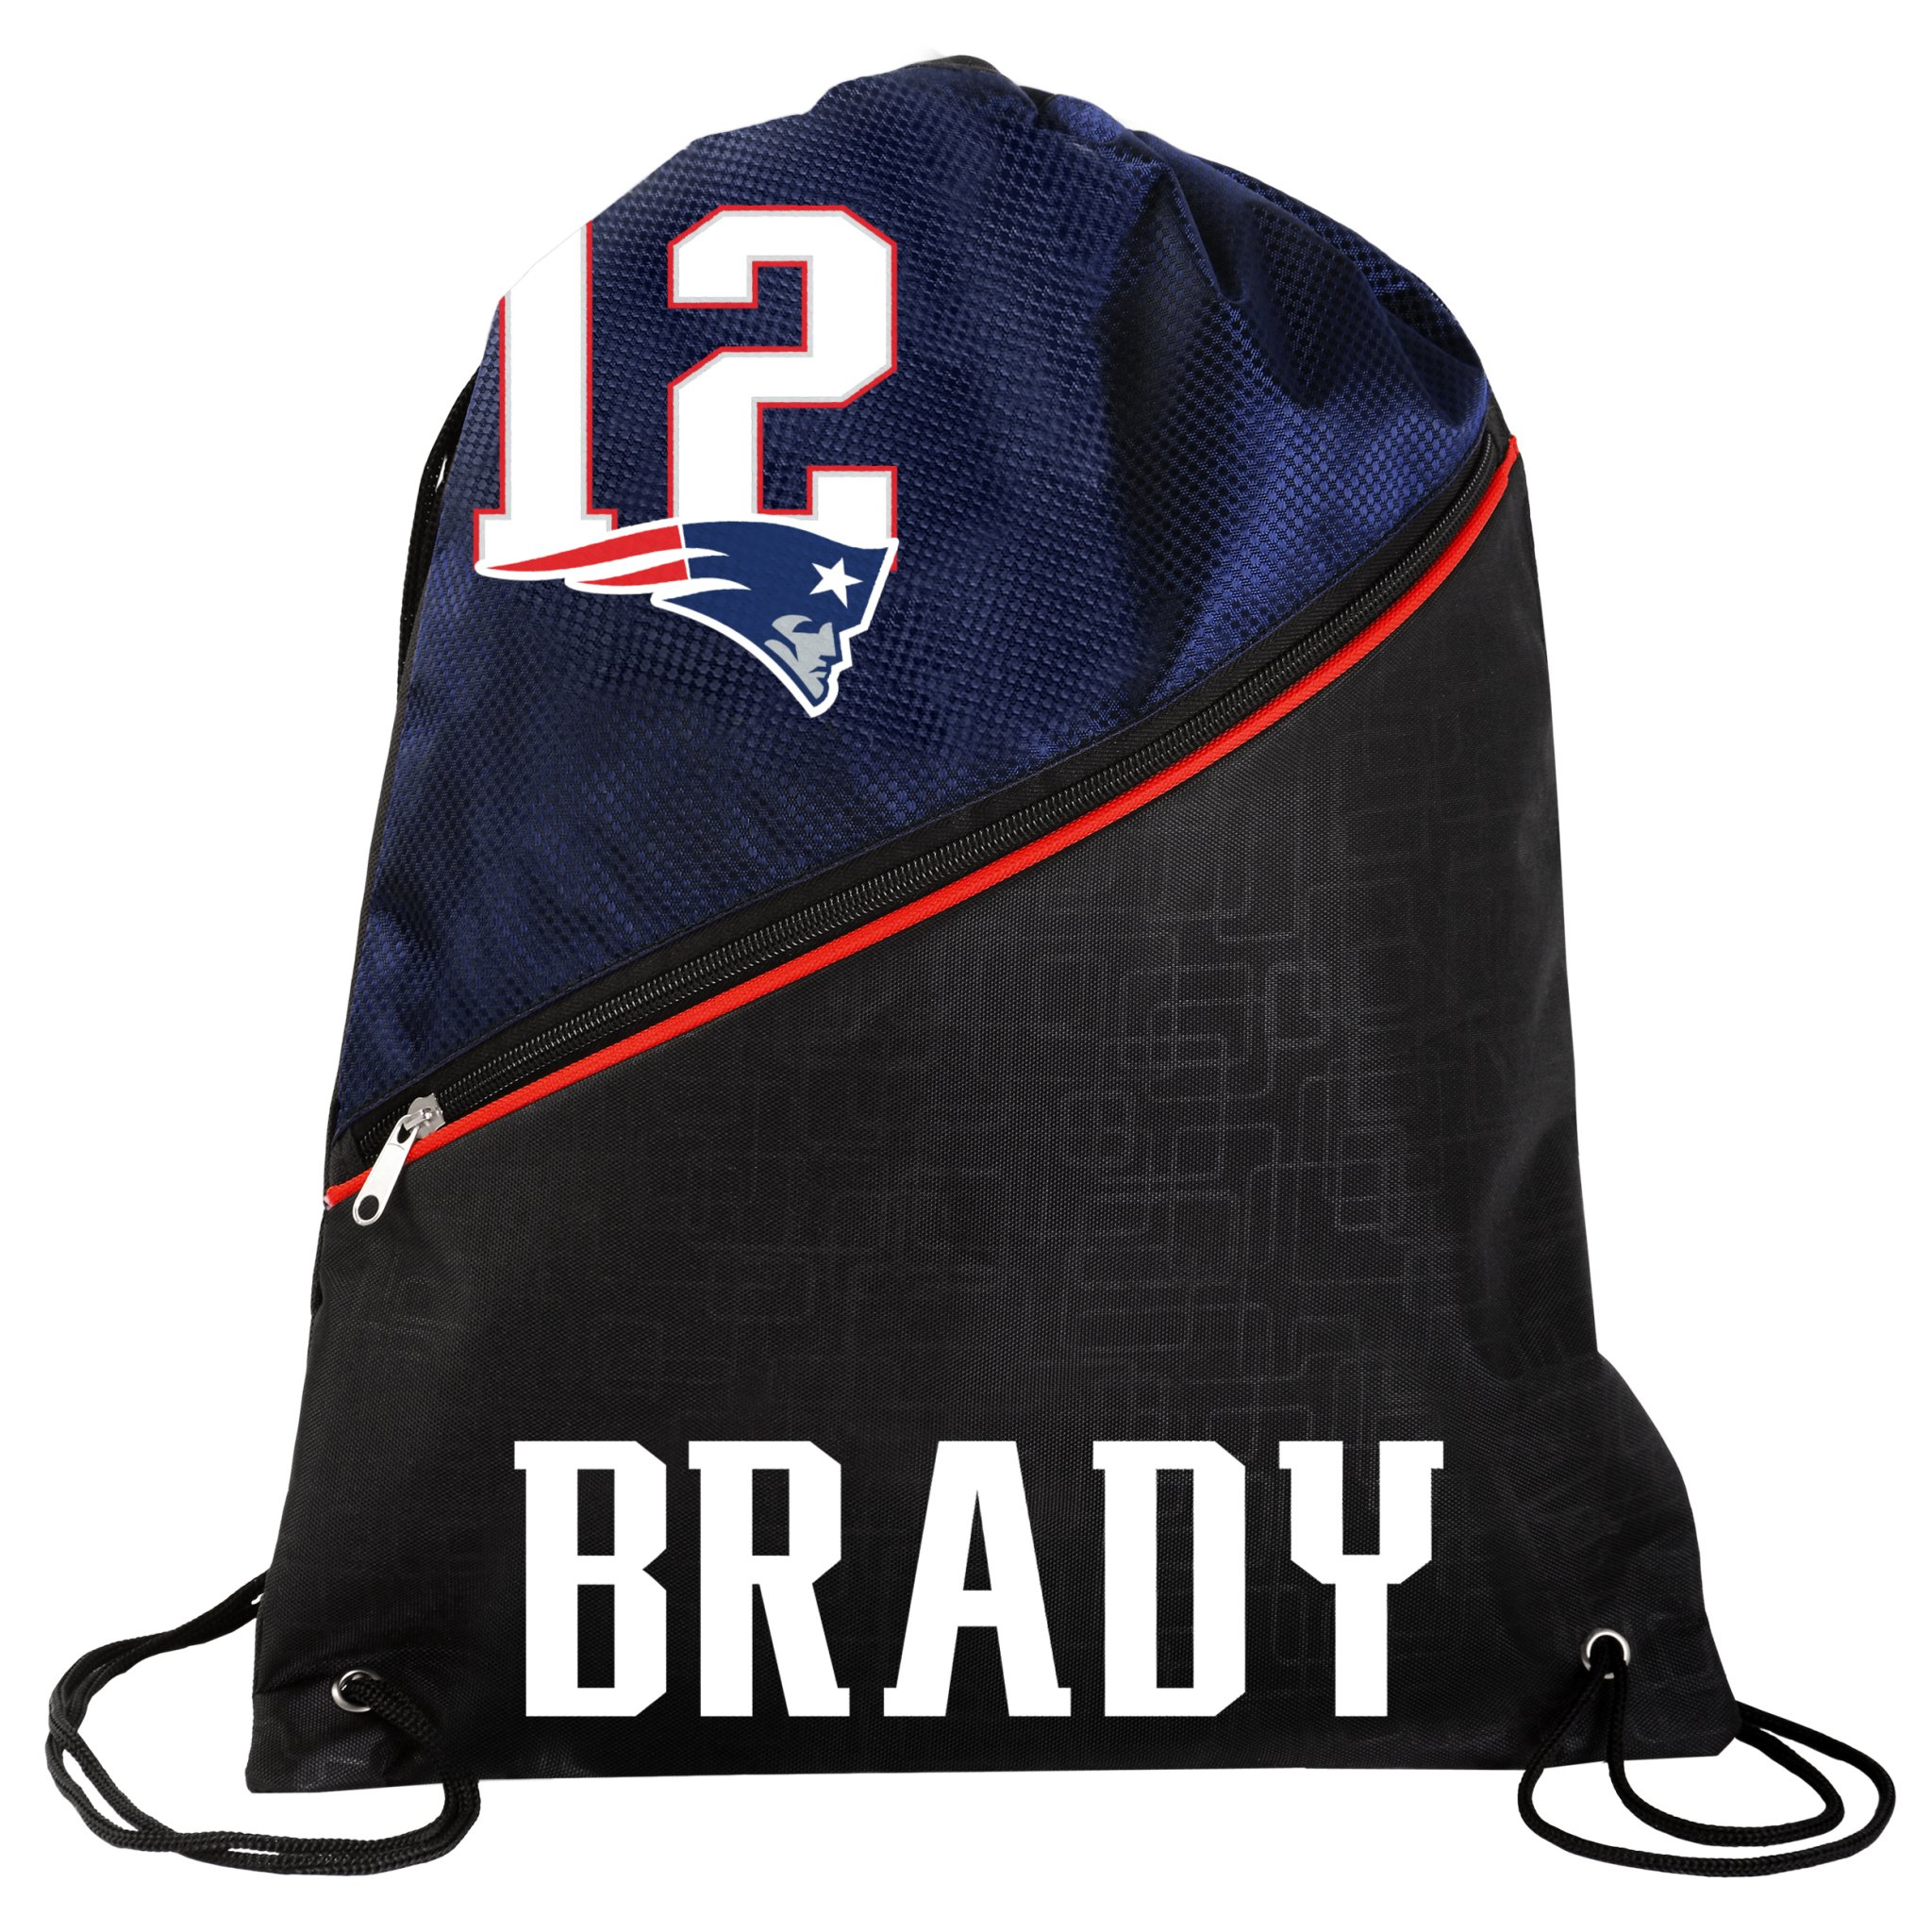 FOCO New England Patriots Official High End Diagonal Zipper Drawstring Backpack Gym Bag - Tom Brady #12 by FOCO